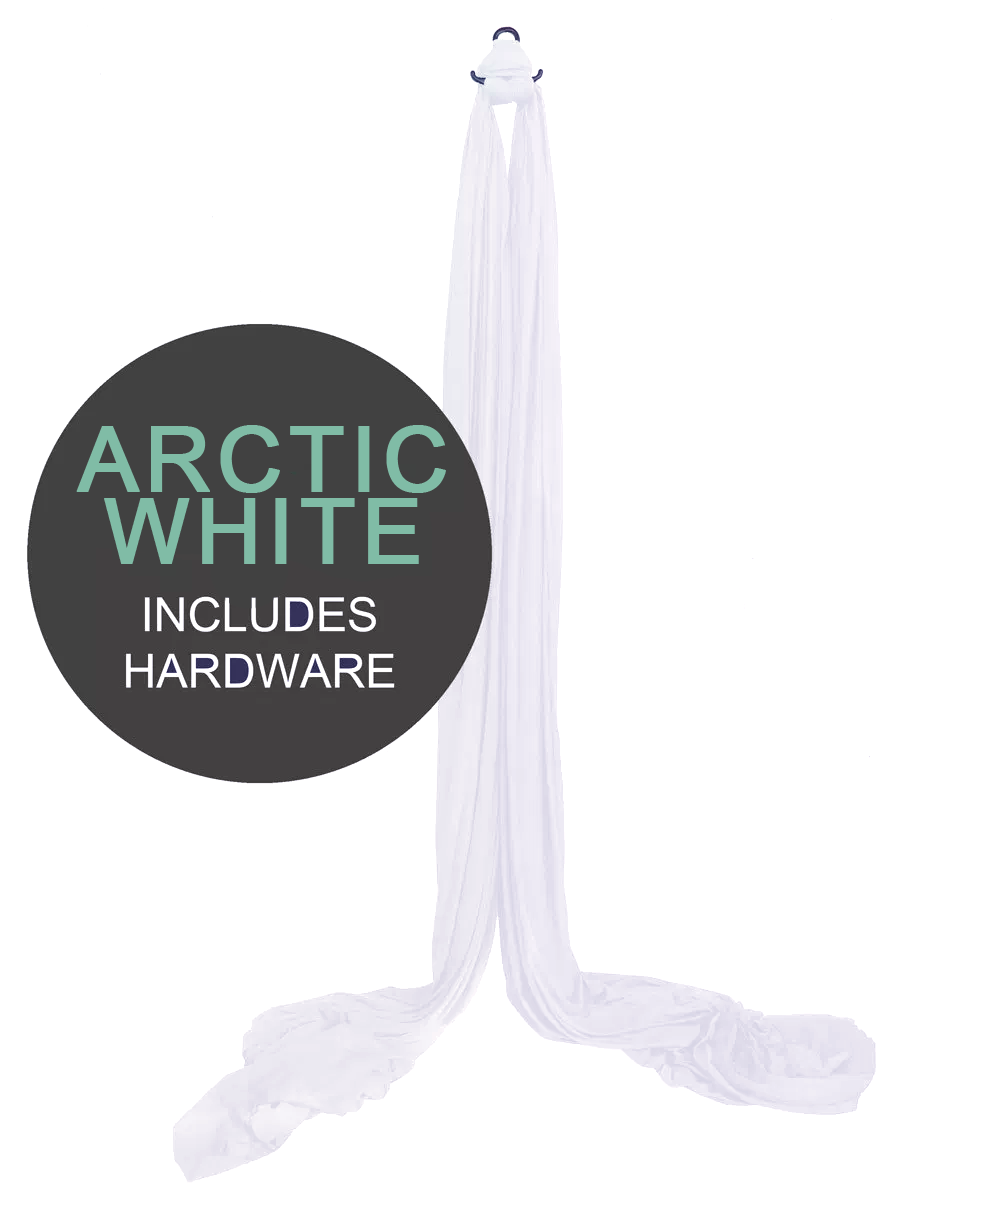 arctic white aerial silks for sale